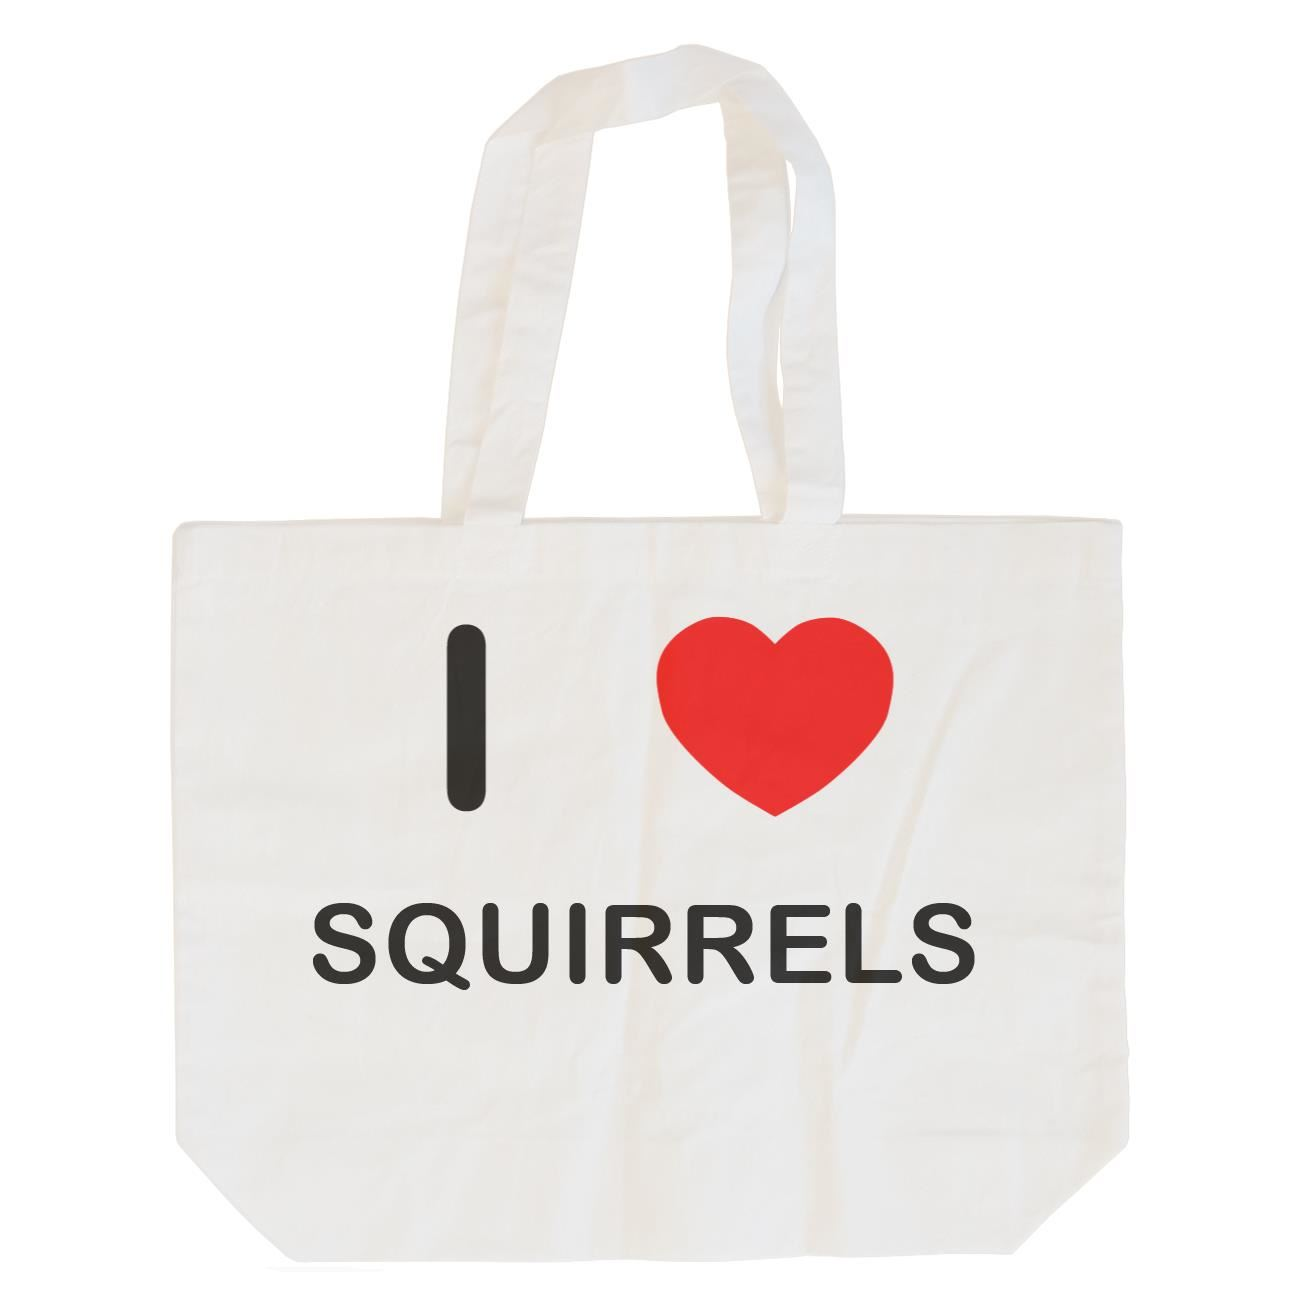 I Love Squirrels - Cotton Bag | Size choice Tote, Shopper or Sling